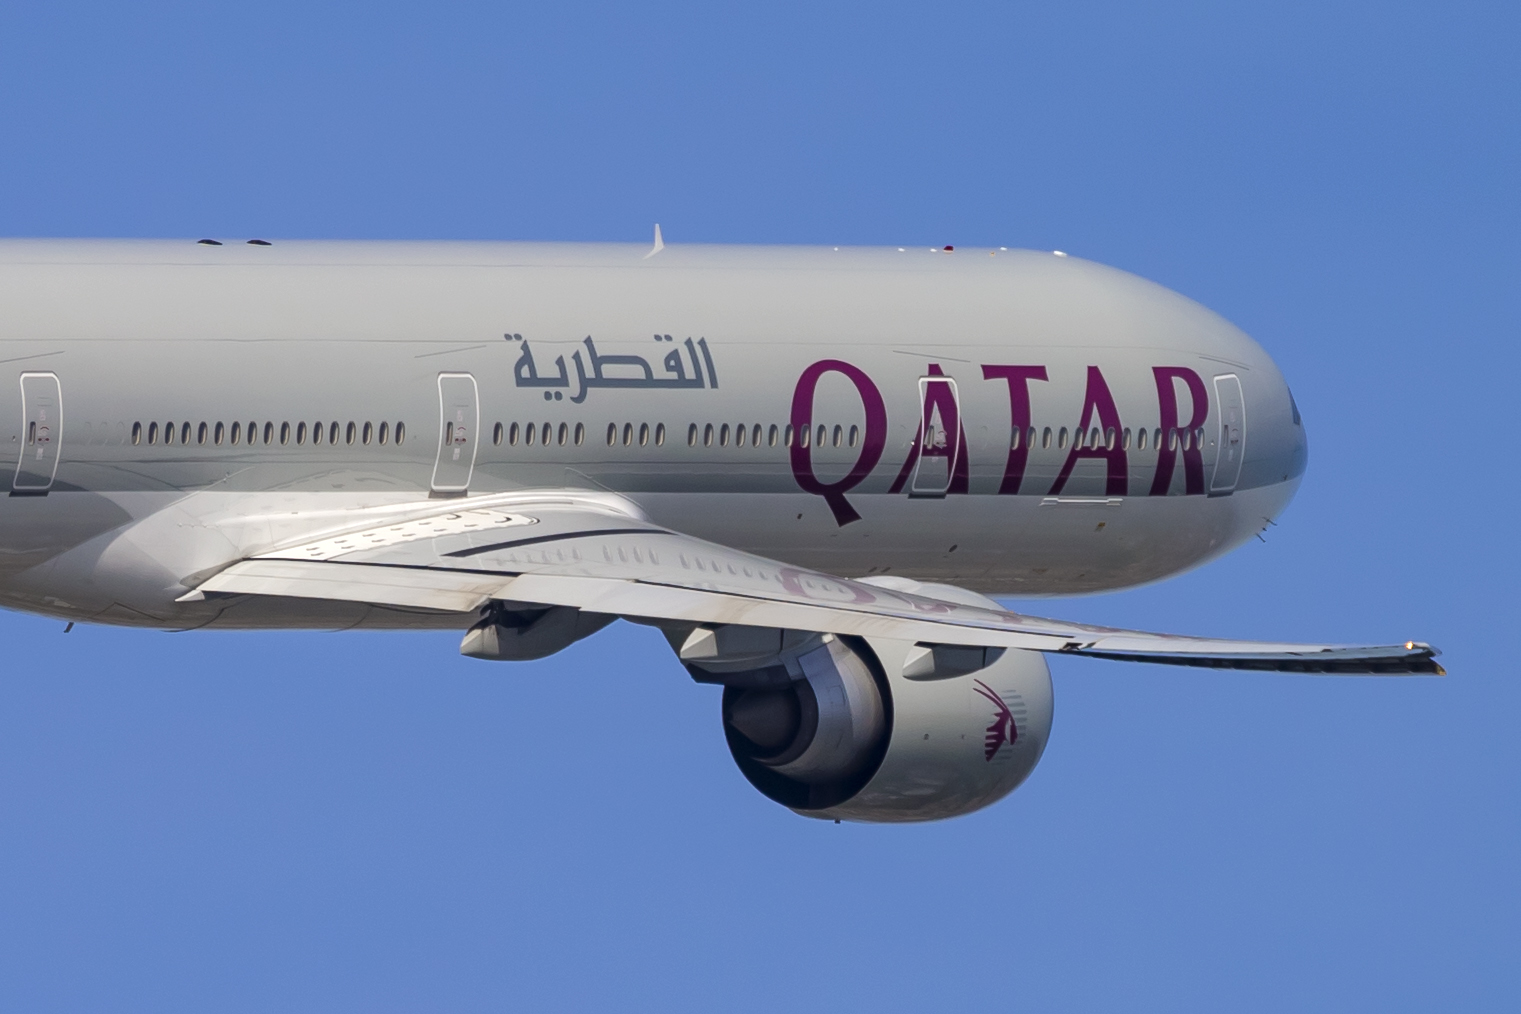 En Boeing 777-300ER fra Qatar Airways. Foto: © Thorbjørn Brunander Sund, Danish Aviation Photo